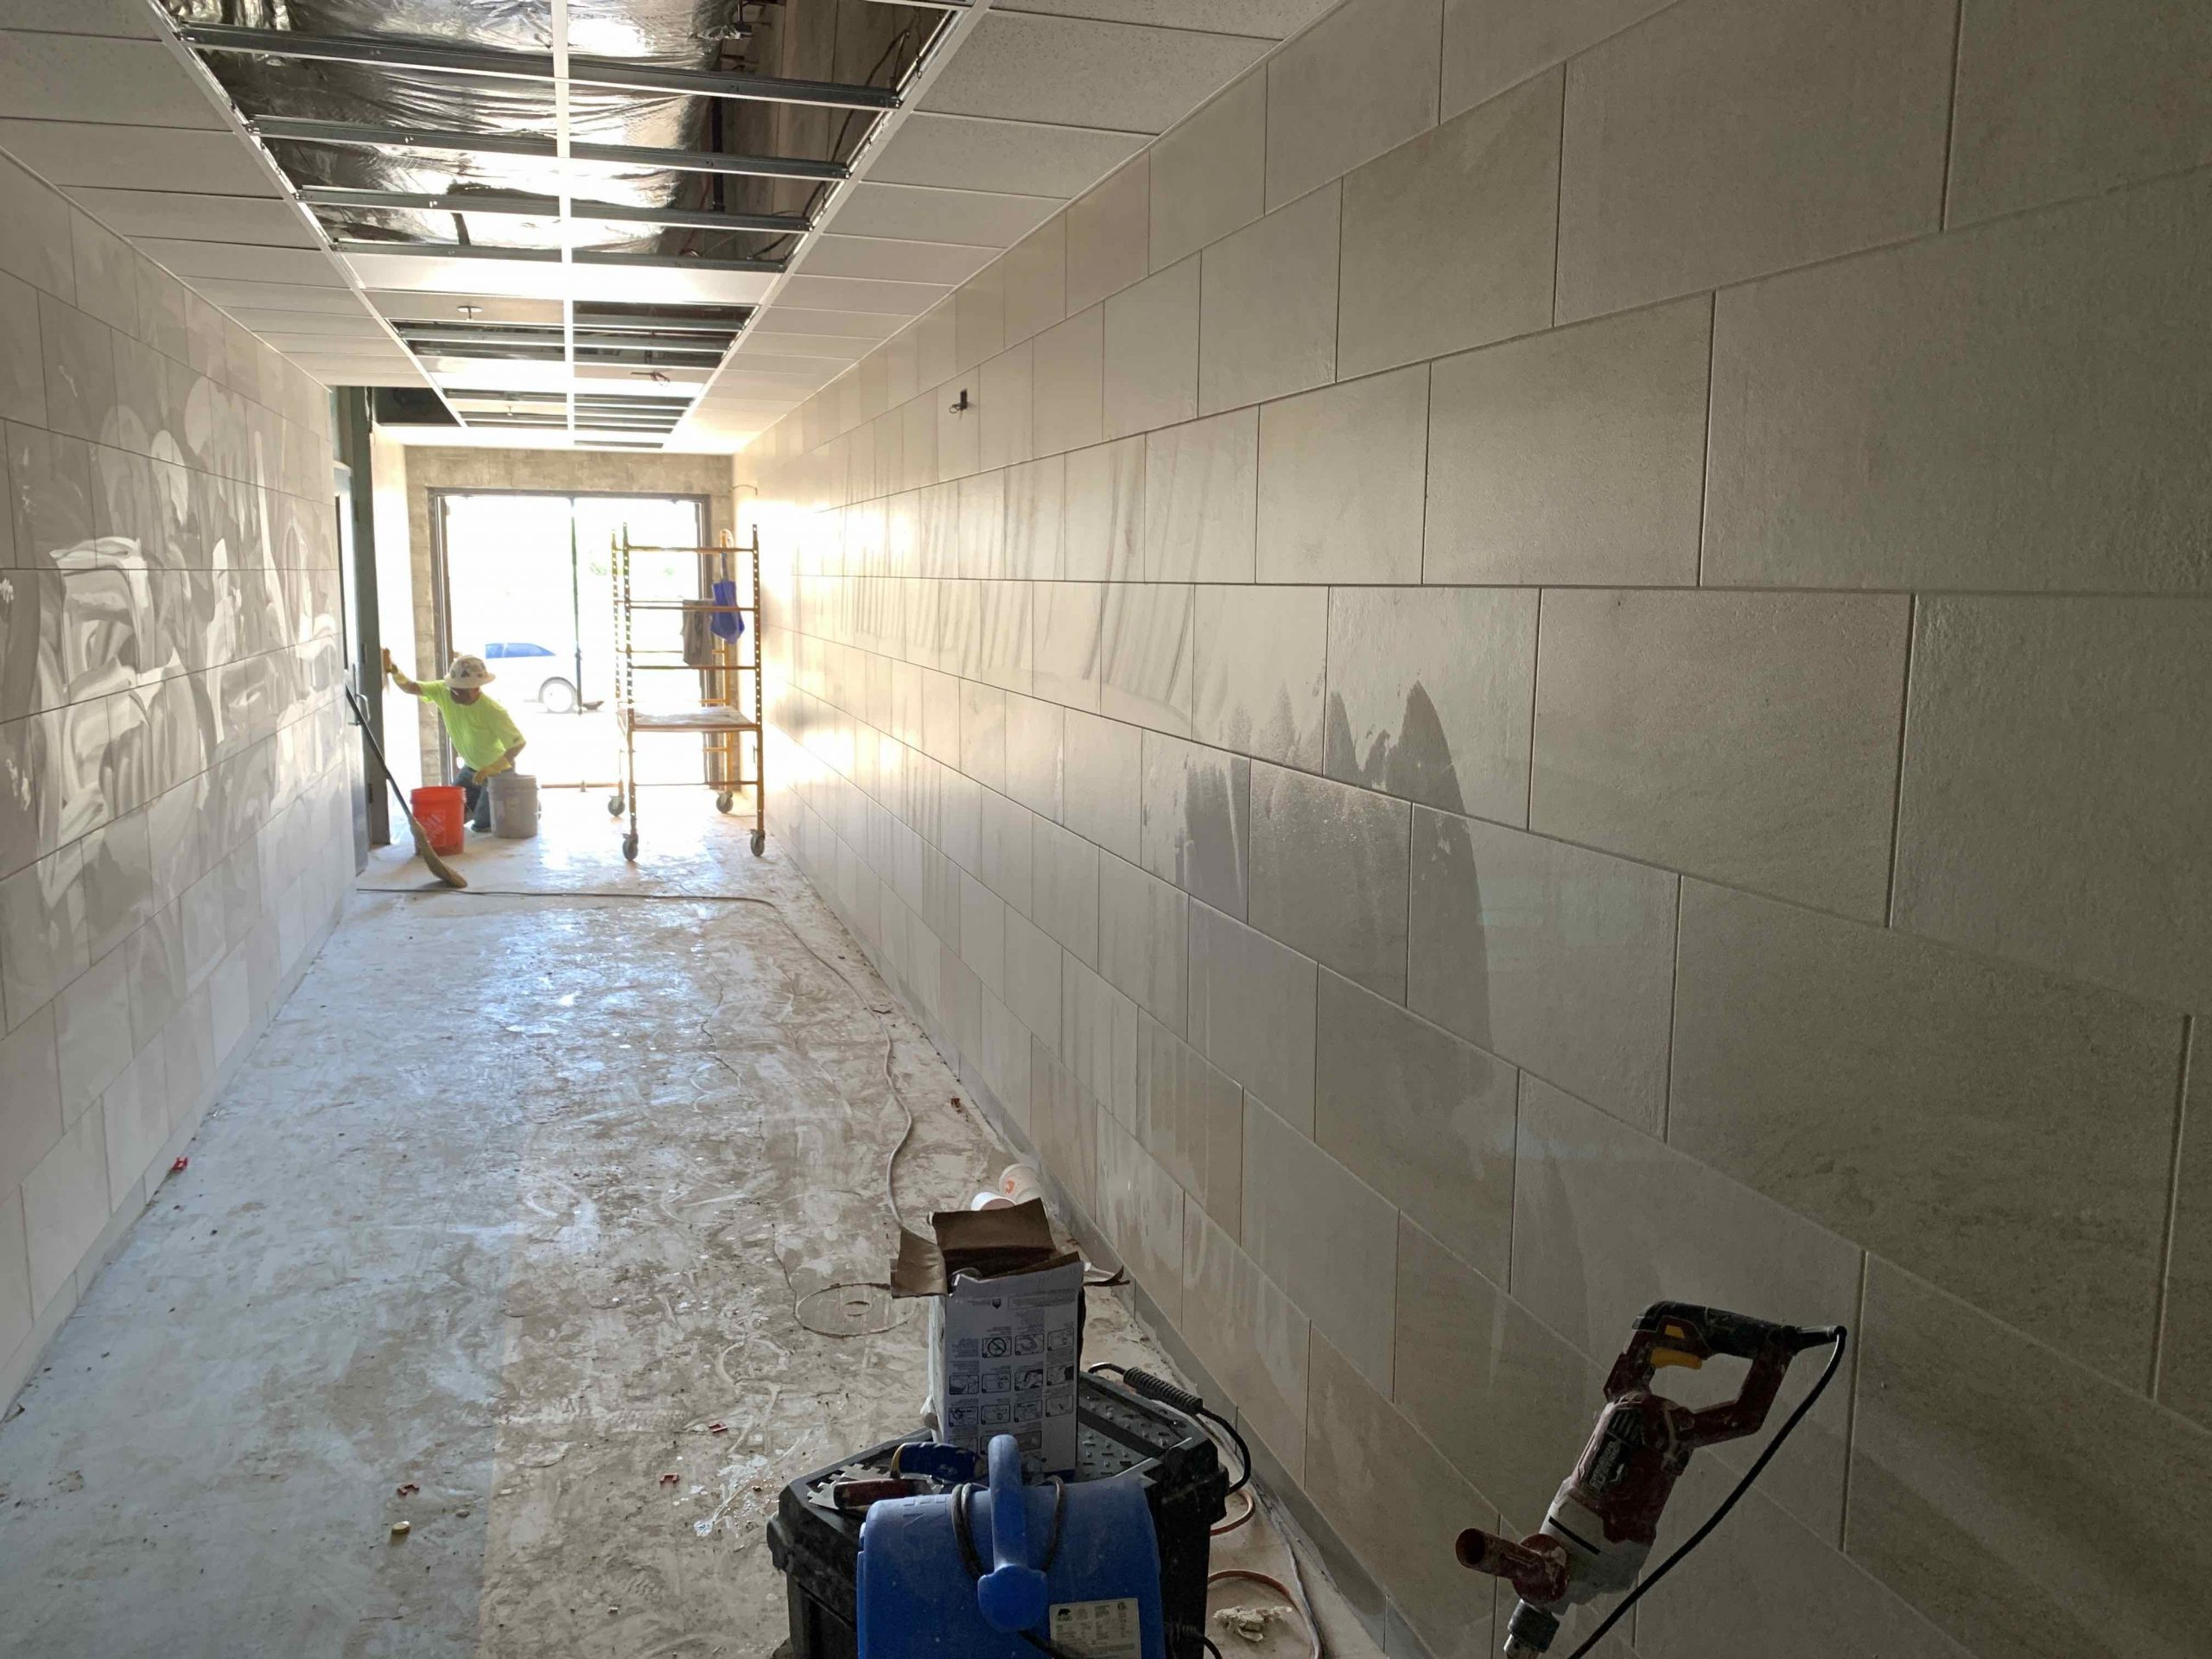 Wall Work image 1